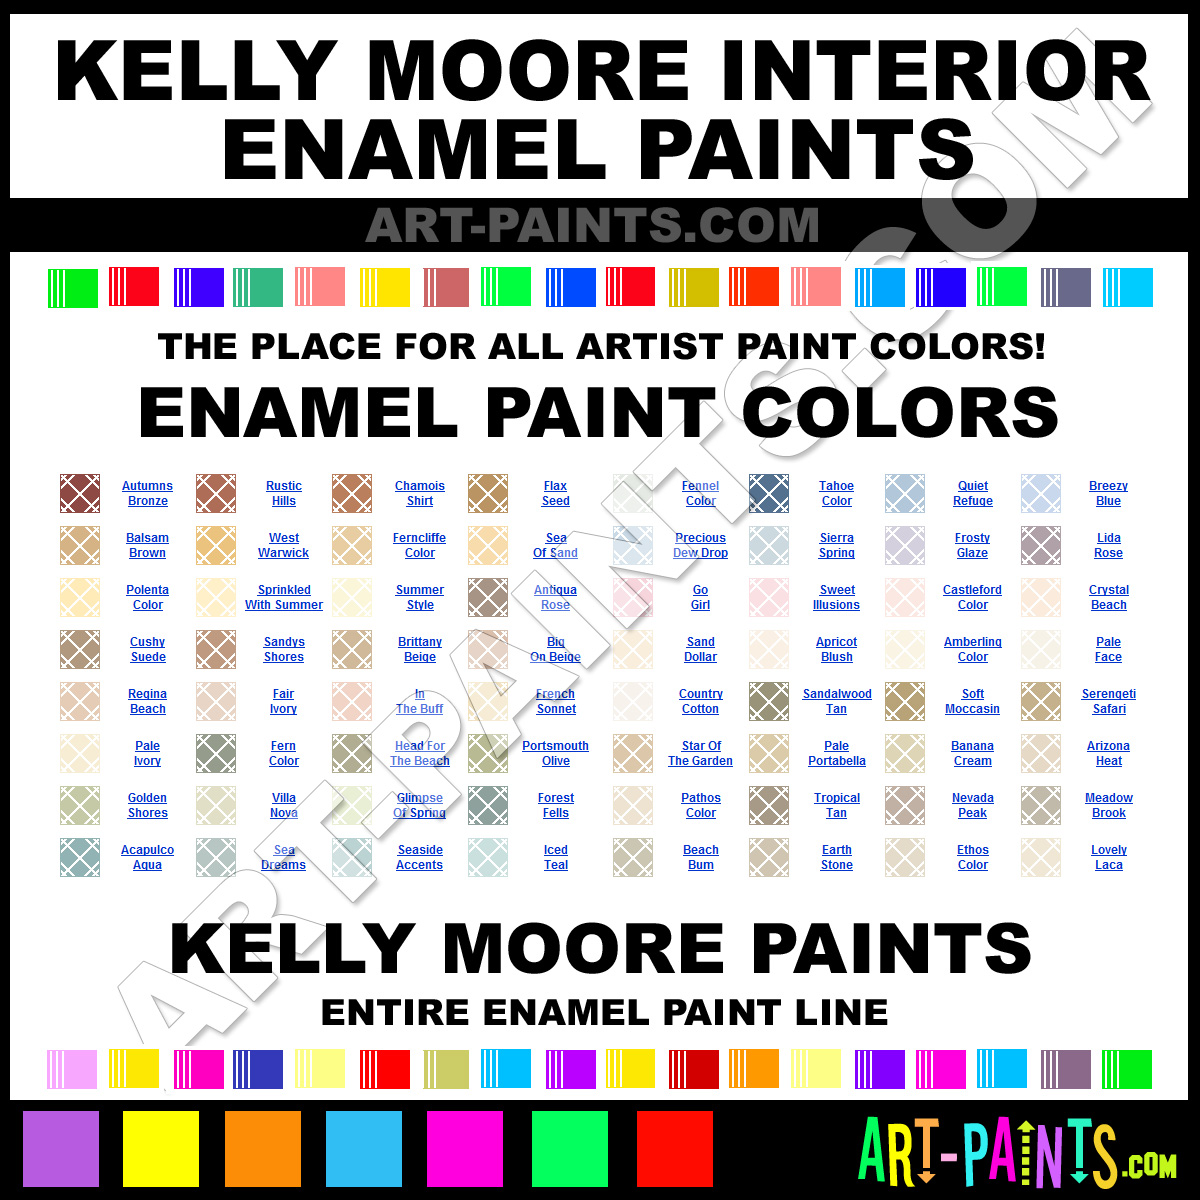 Kelly Moore Exterior Paint Colors Schemes Home Design 2017